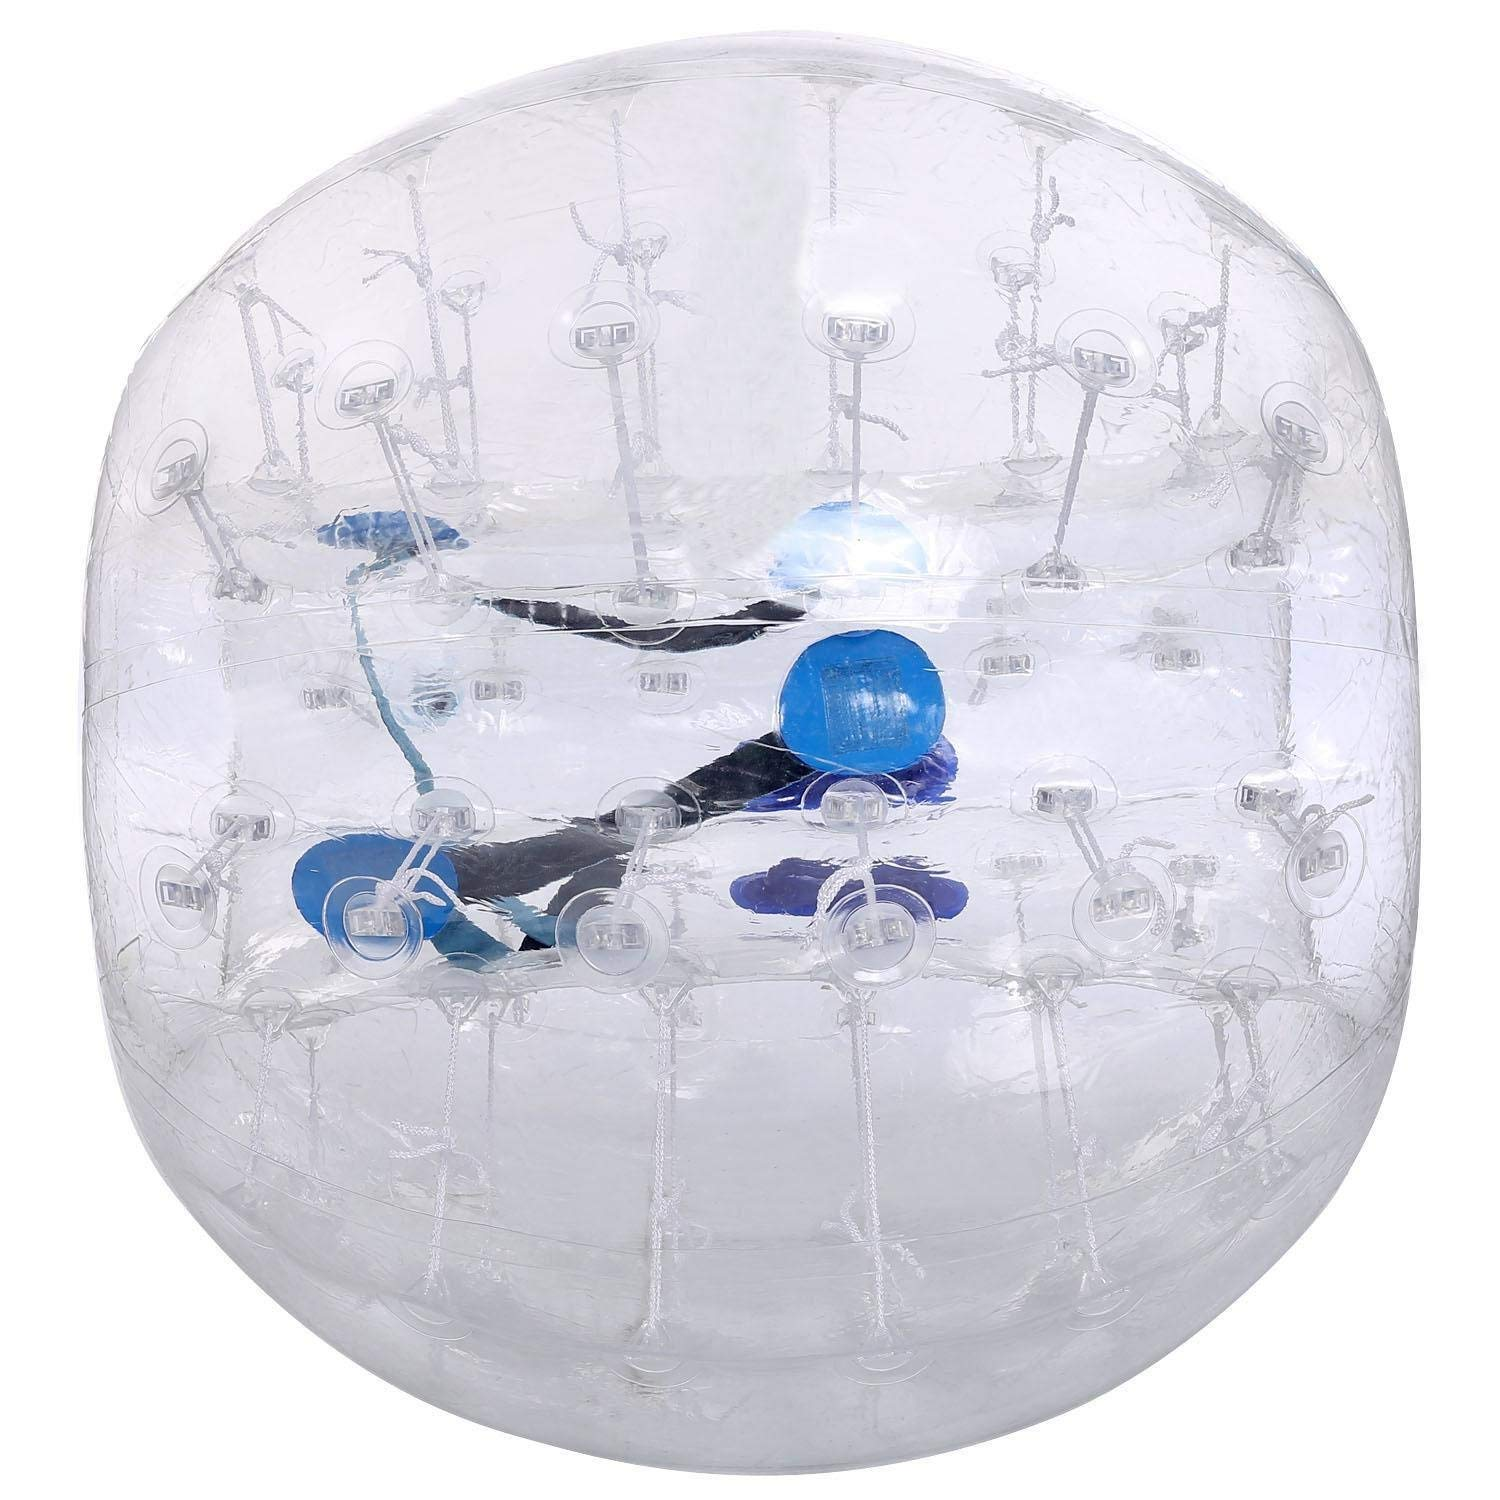 Meflying Bubble Ball Inflatable Bumper Ball, 1.2M/1.5M Bubble Soccer Ball Zorb Ball for Adults and Kids (US Stock)